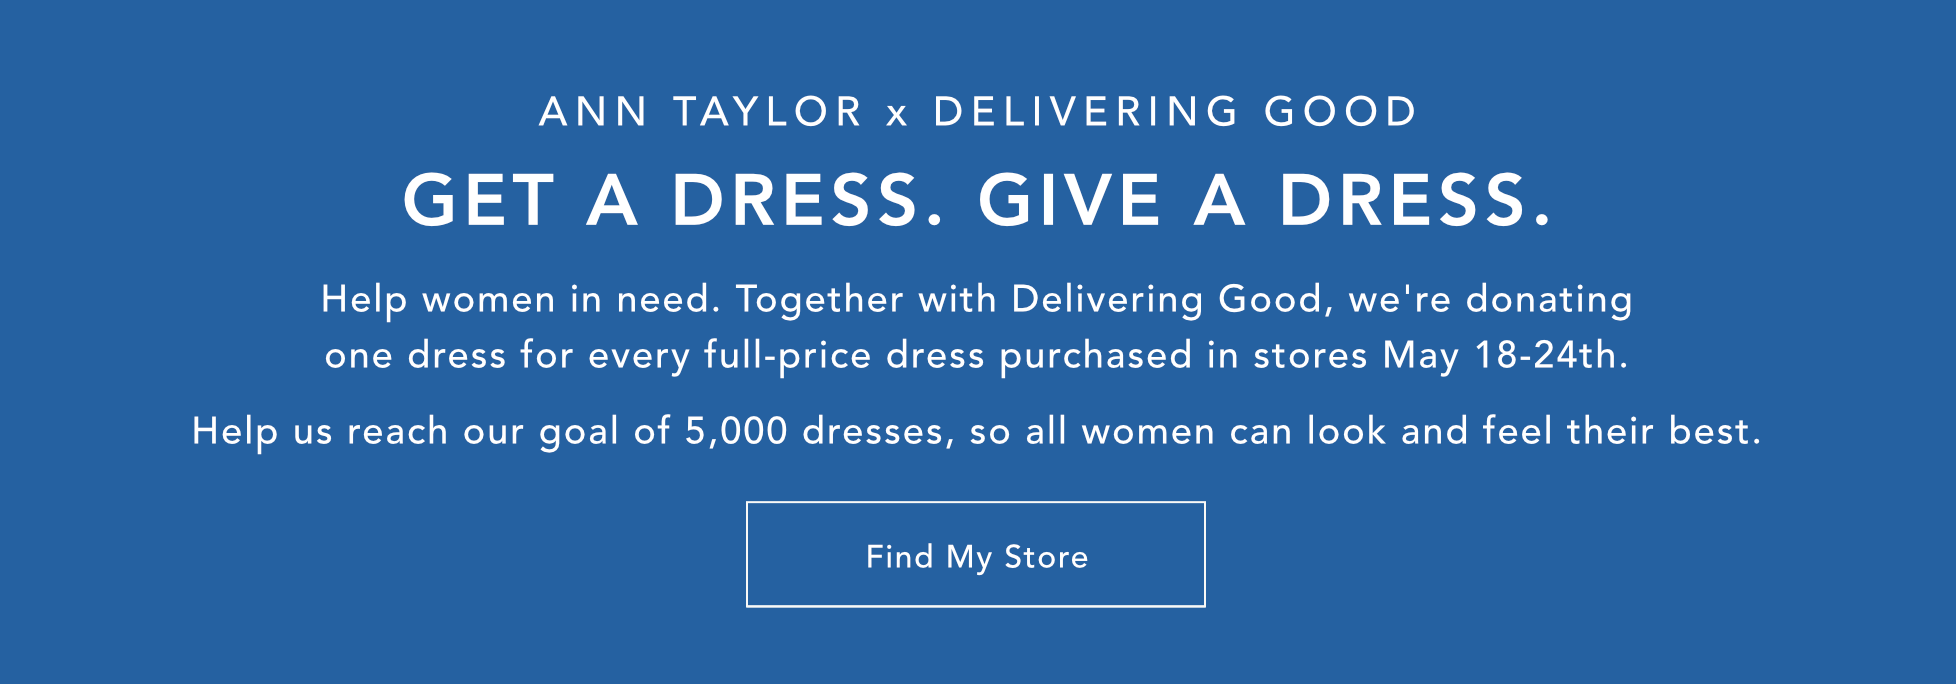 GET A DRESS. GIVE A DRESS. - FIND MY STORE